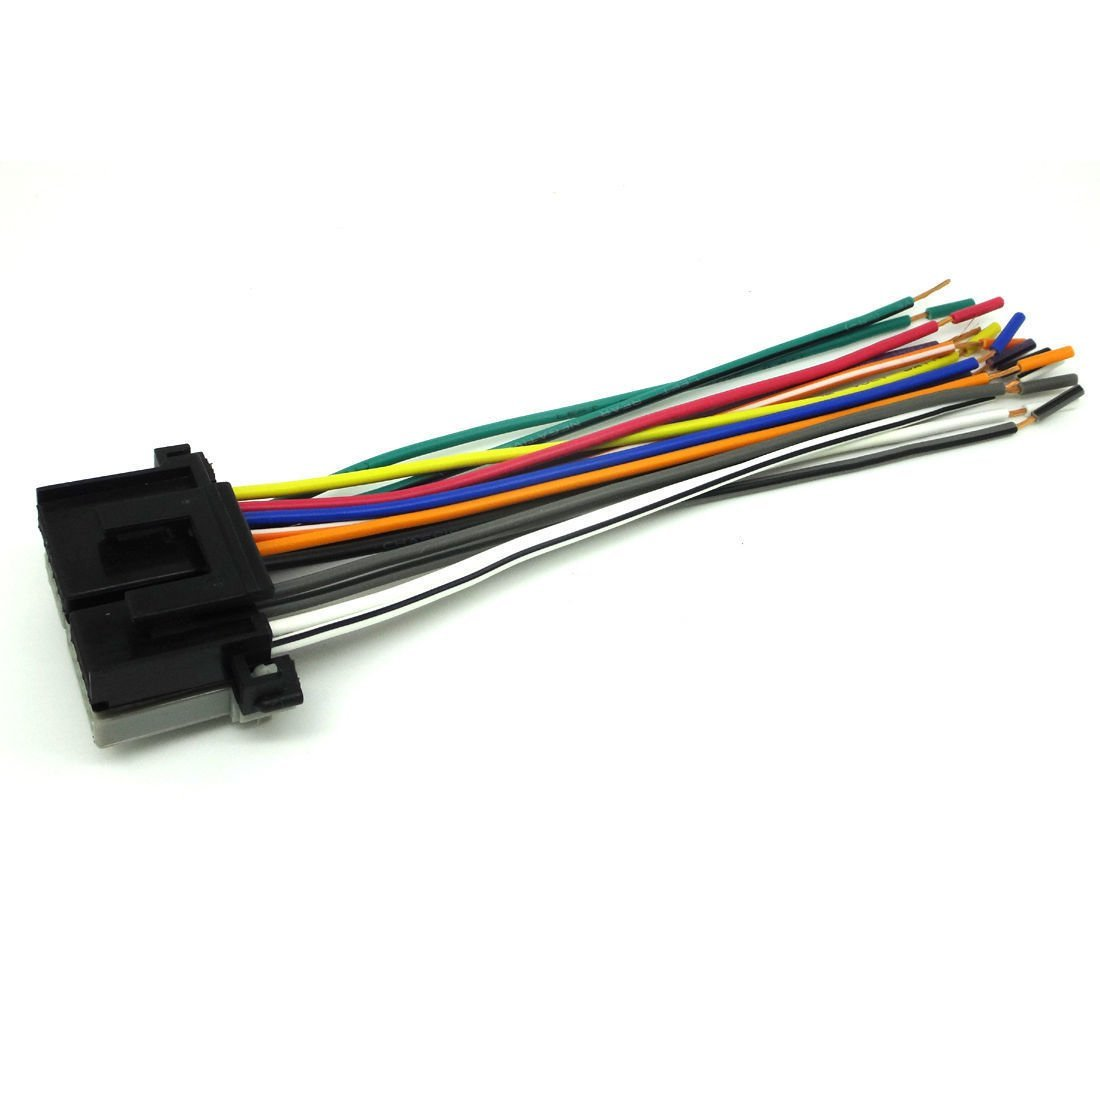 Buy Conpus Ford Plugs Into Factory Radio Car Stereo Cd Player Wiring Gm Harness Connectors Wire 1999 2002